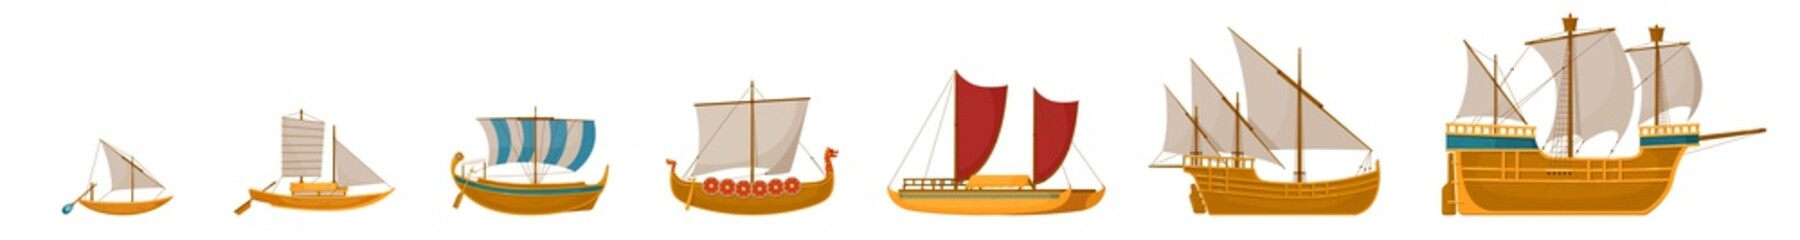 Fotorolgordijn Schip Vintage sailboats set. Isolated cartoon vintage wooden sail boat ship icon collection. Vector old nautical sailboat vessel and ocean travel concept